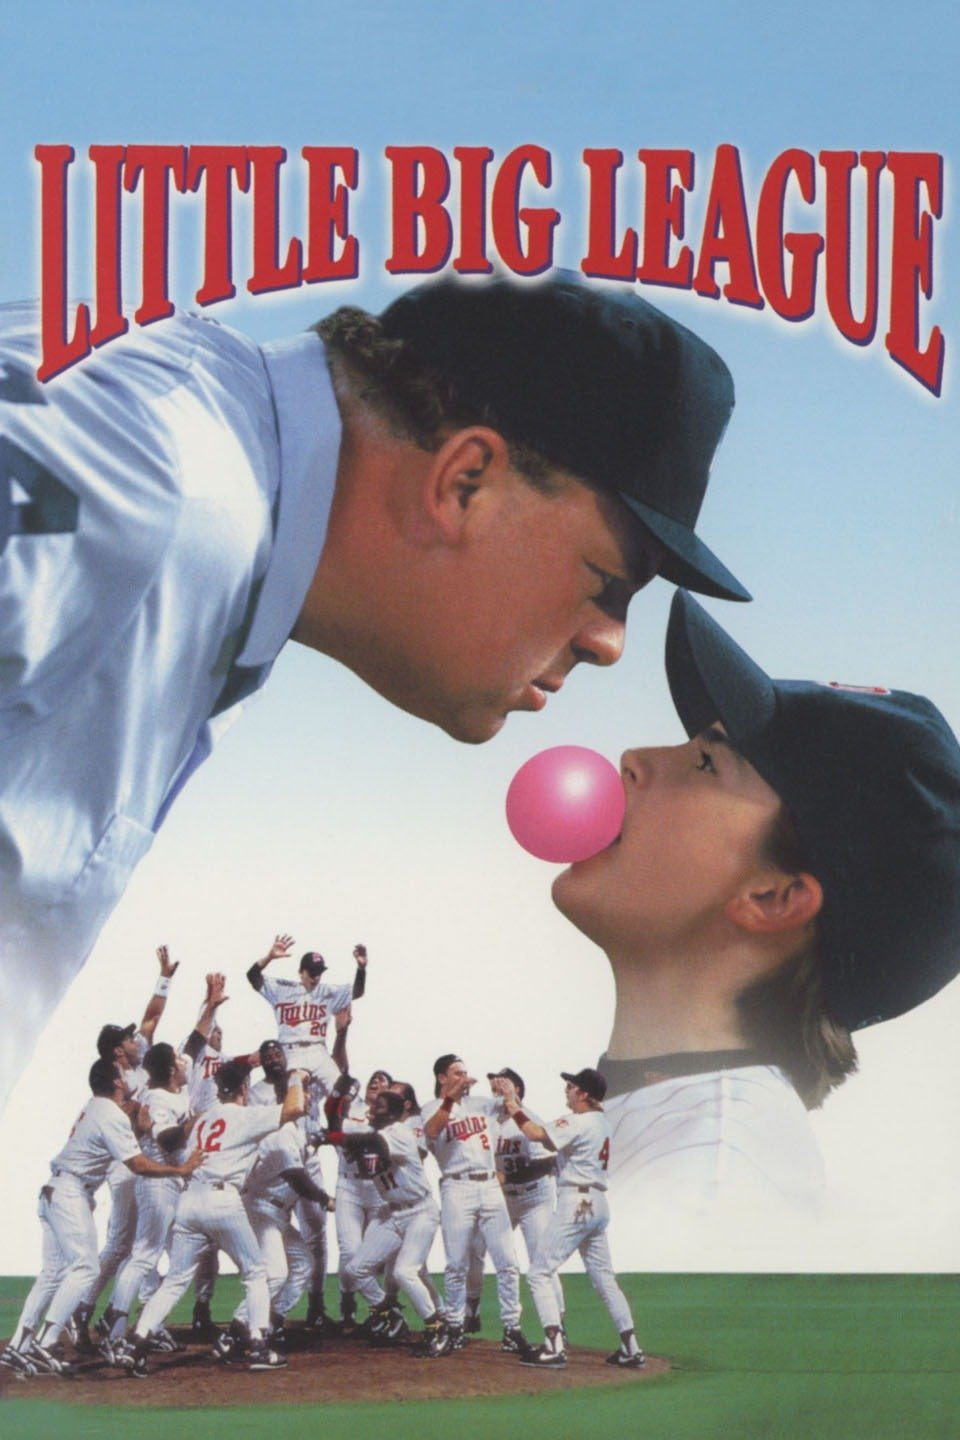 best baseball movies - little big league